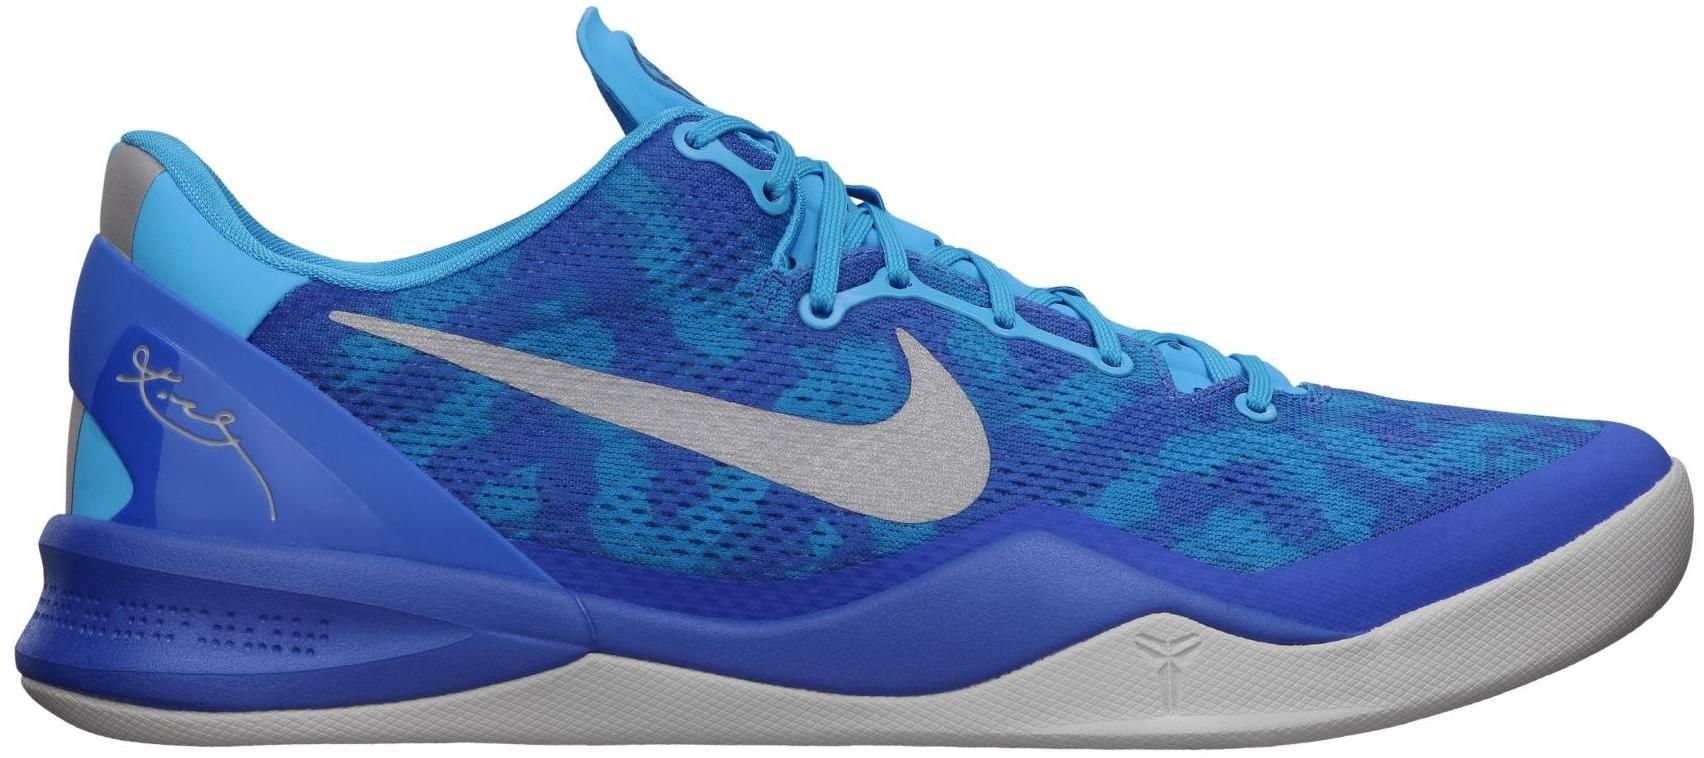 cheap for discount ad580 bd8ba ... promo code for buy nike kobe 8 shoes deadstock sneakers fd6ce b84c9